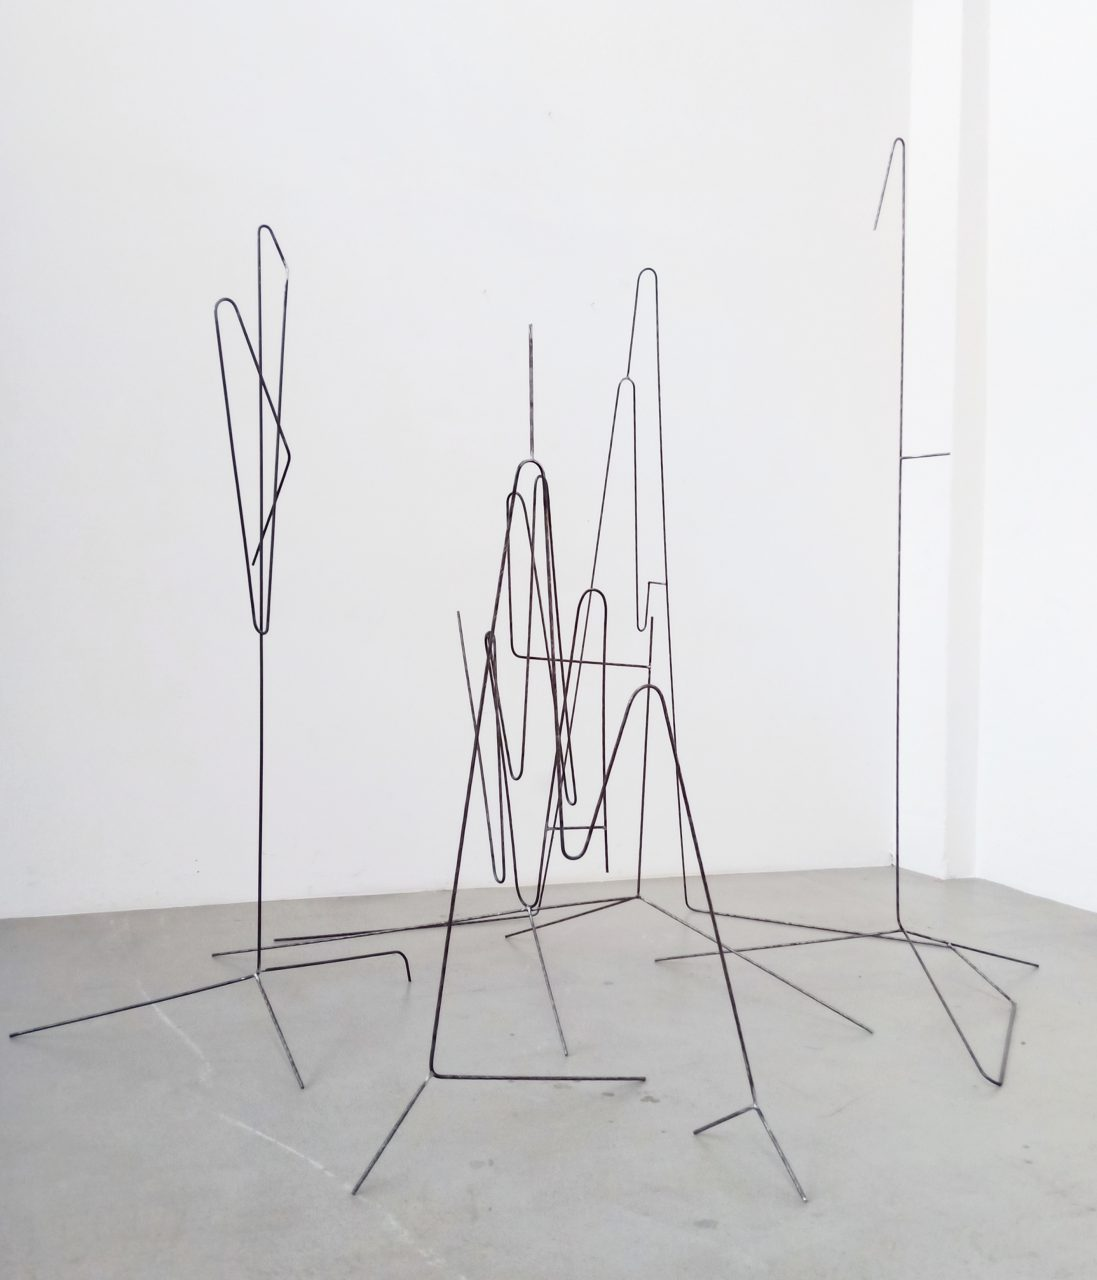 Le Squad, 2019, studio view, sculpturedrawings family